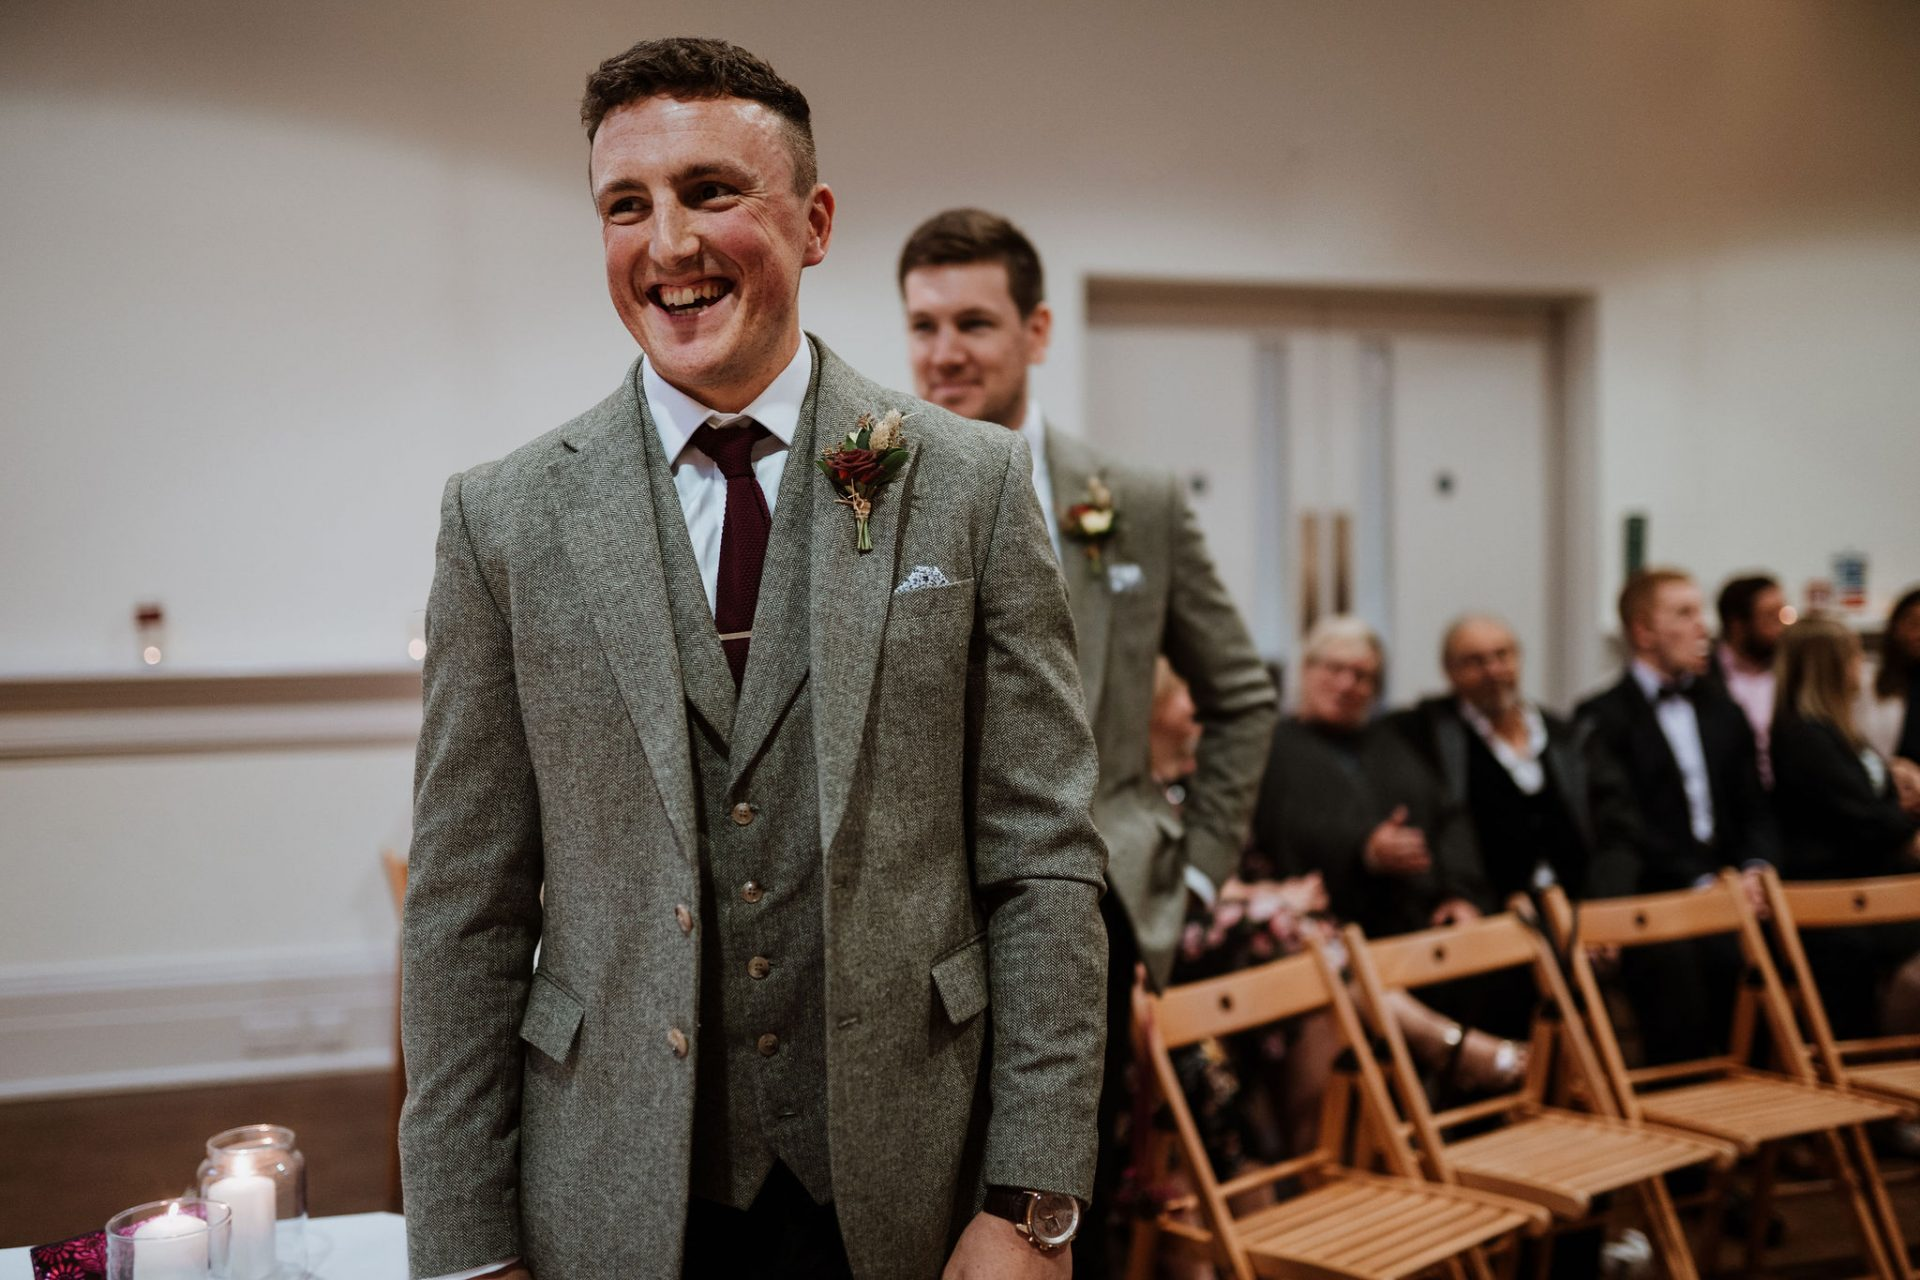 groom laughing in ceremony room